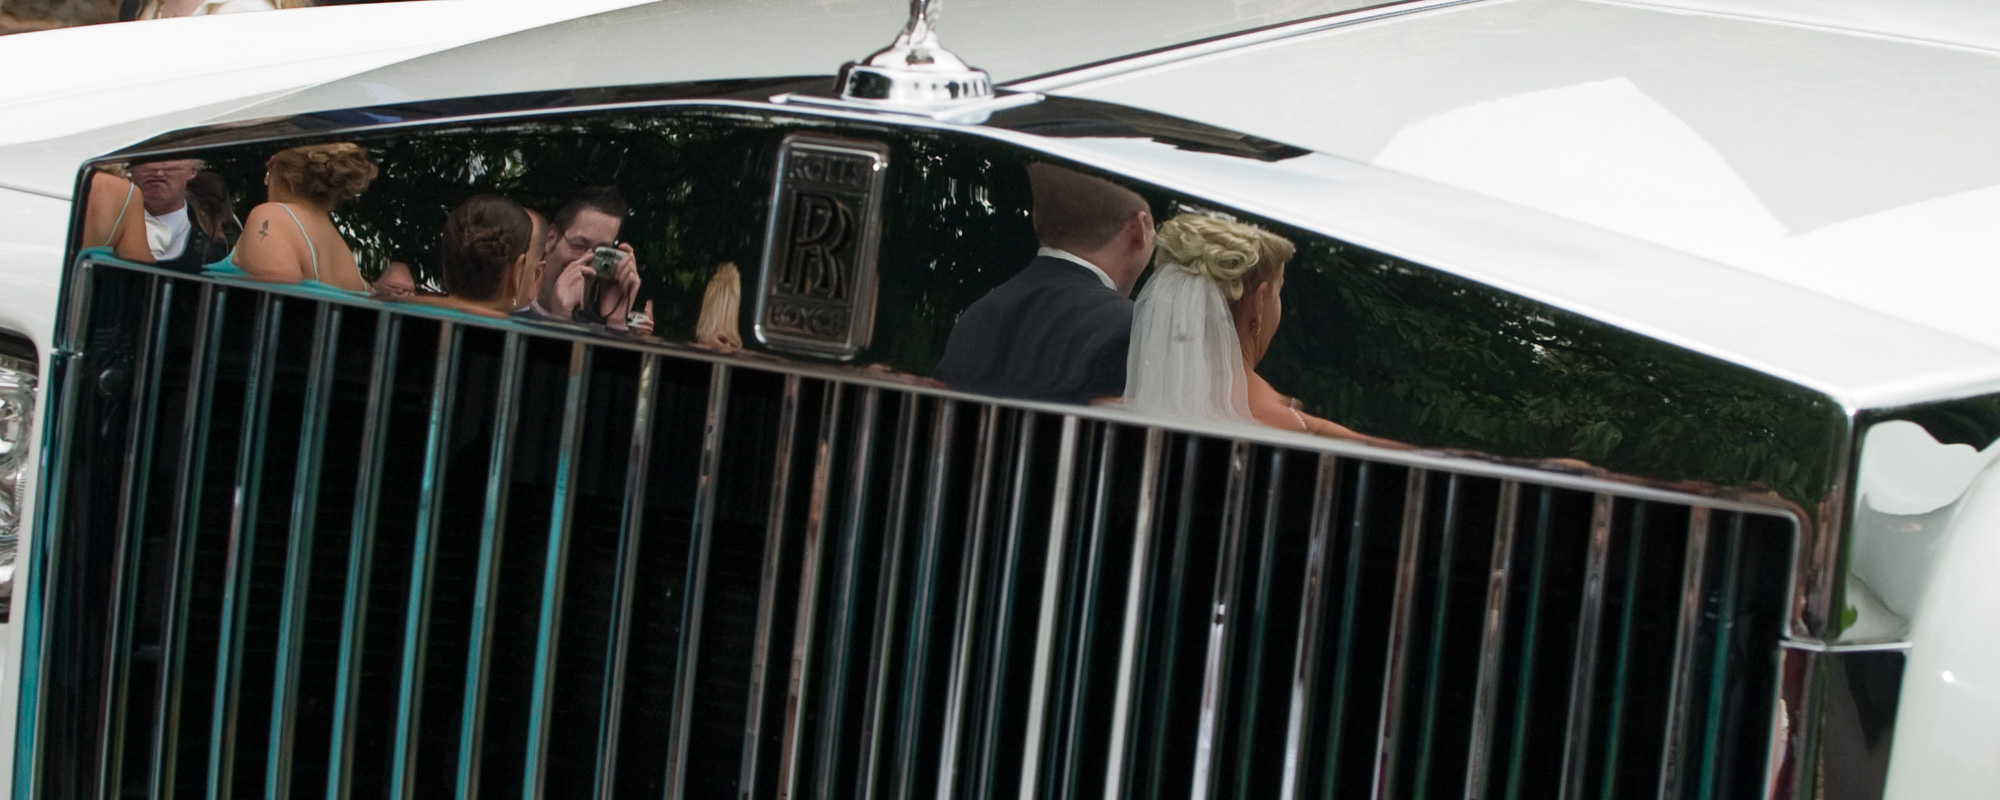 Reflection of bride and groom in Rolls Royce